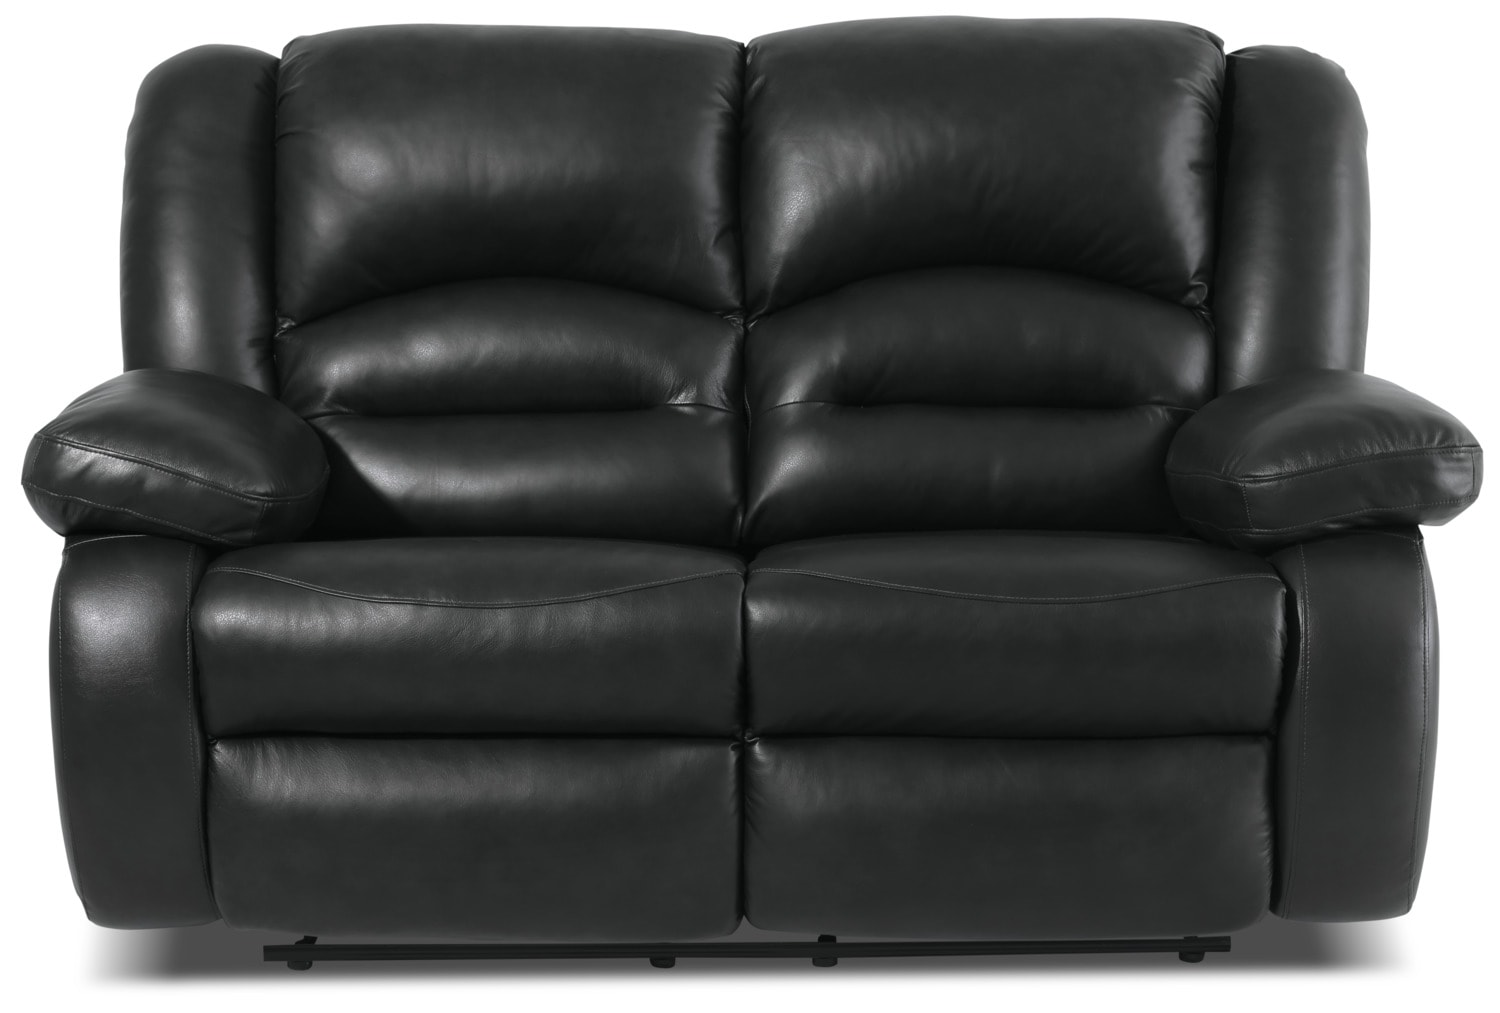 Toreno Genuine Leather Power Reclining Loveseat – Black